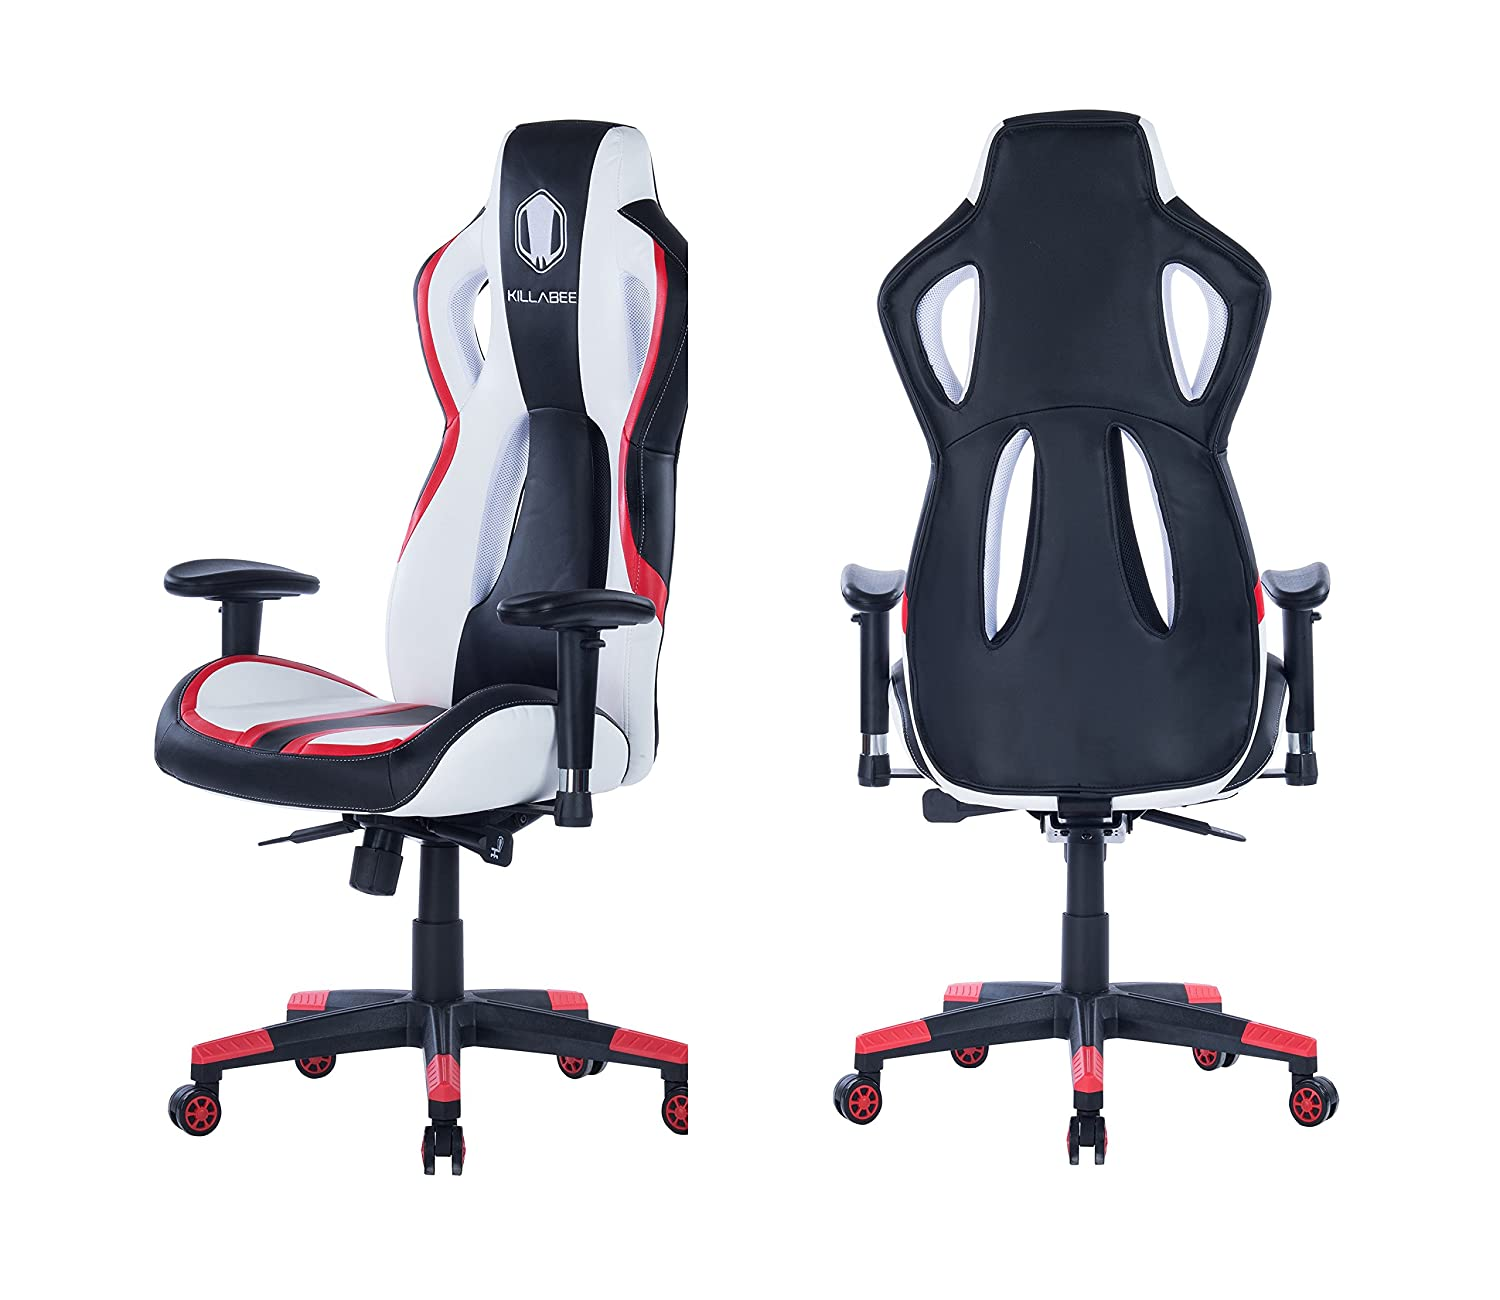 HEALGEN Gaming Chair Racing Style High-Back PU Leather Office Chair PC Desk Chair Executive and Ergonomic Swivel Chair Red